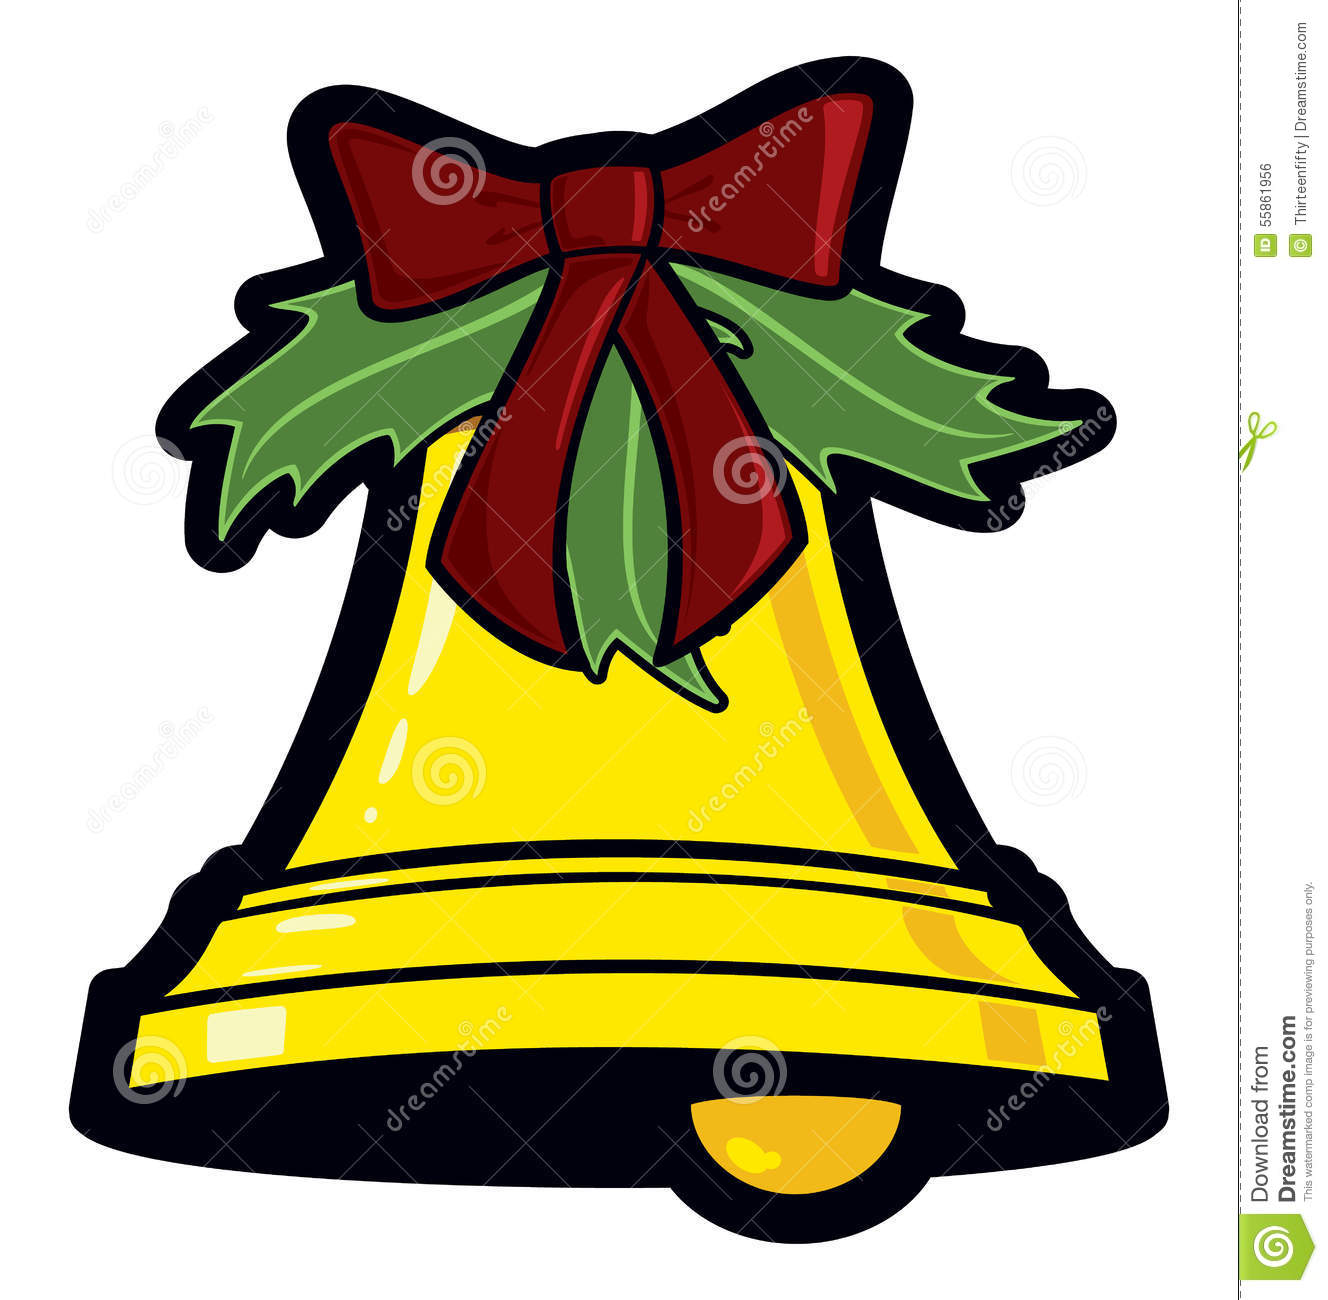 Christmas Bell Stock Vector. Image Of Decoration, Gold